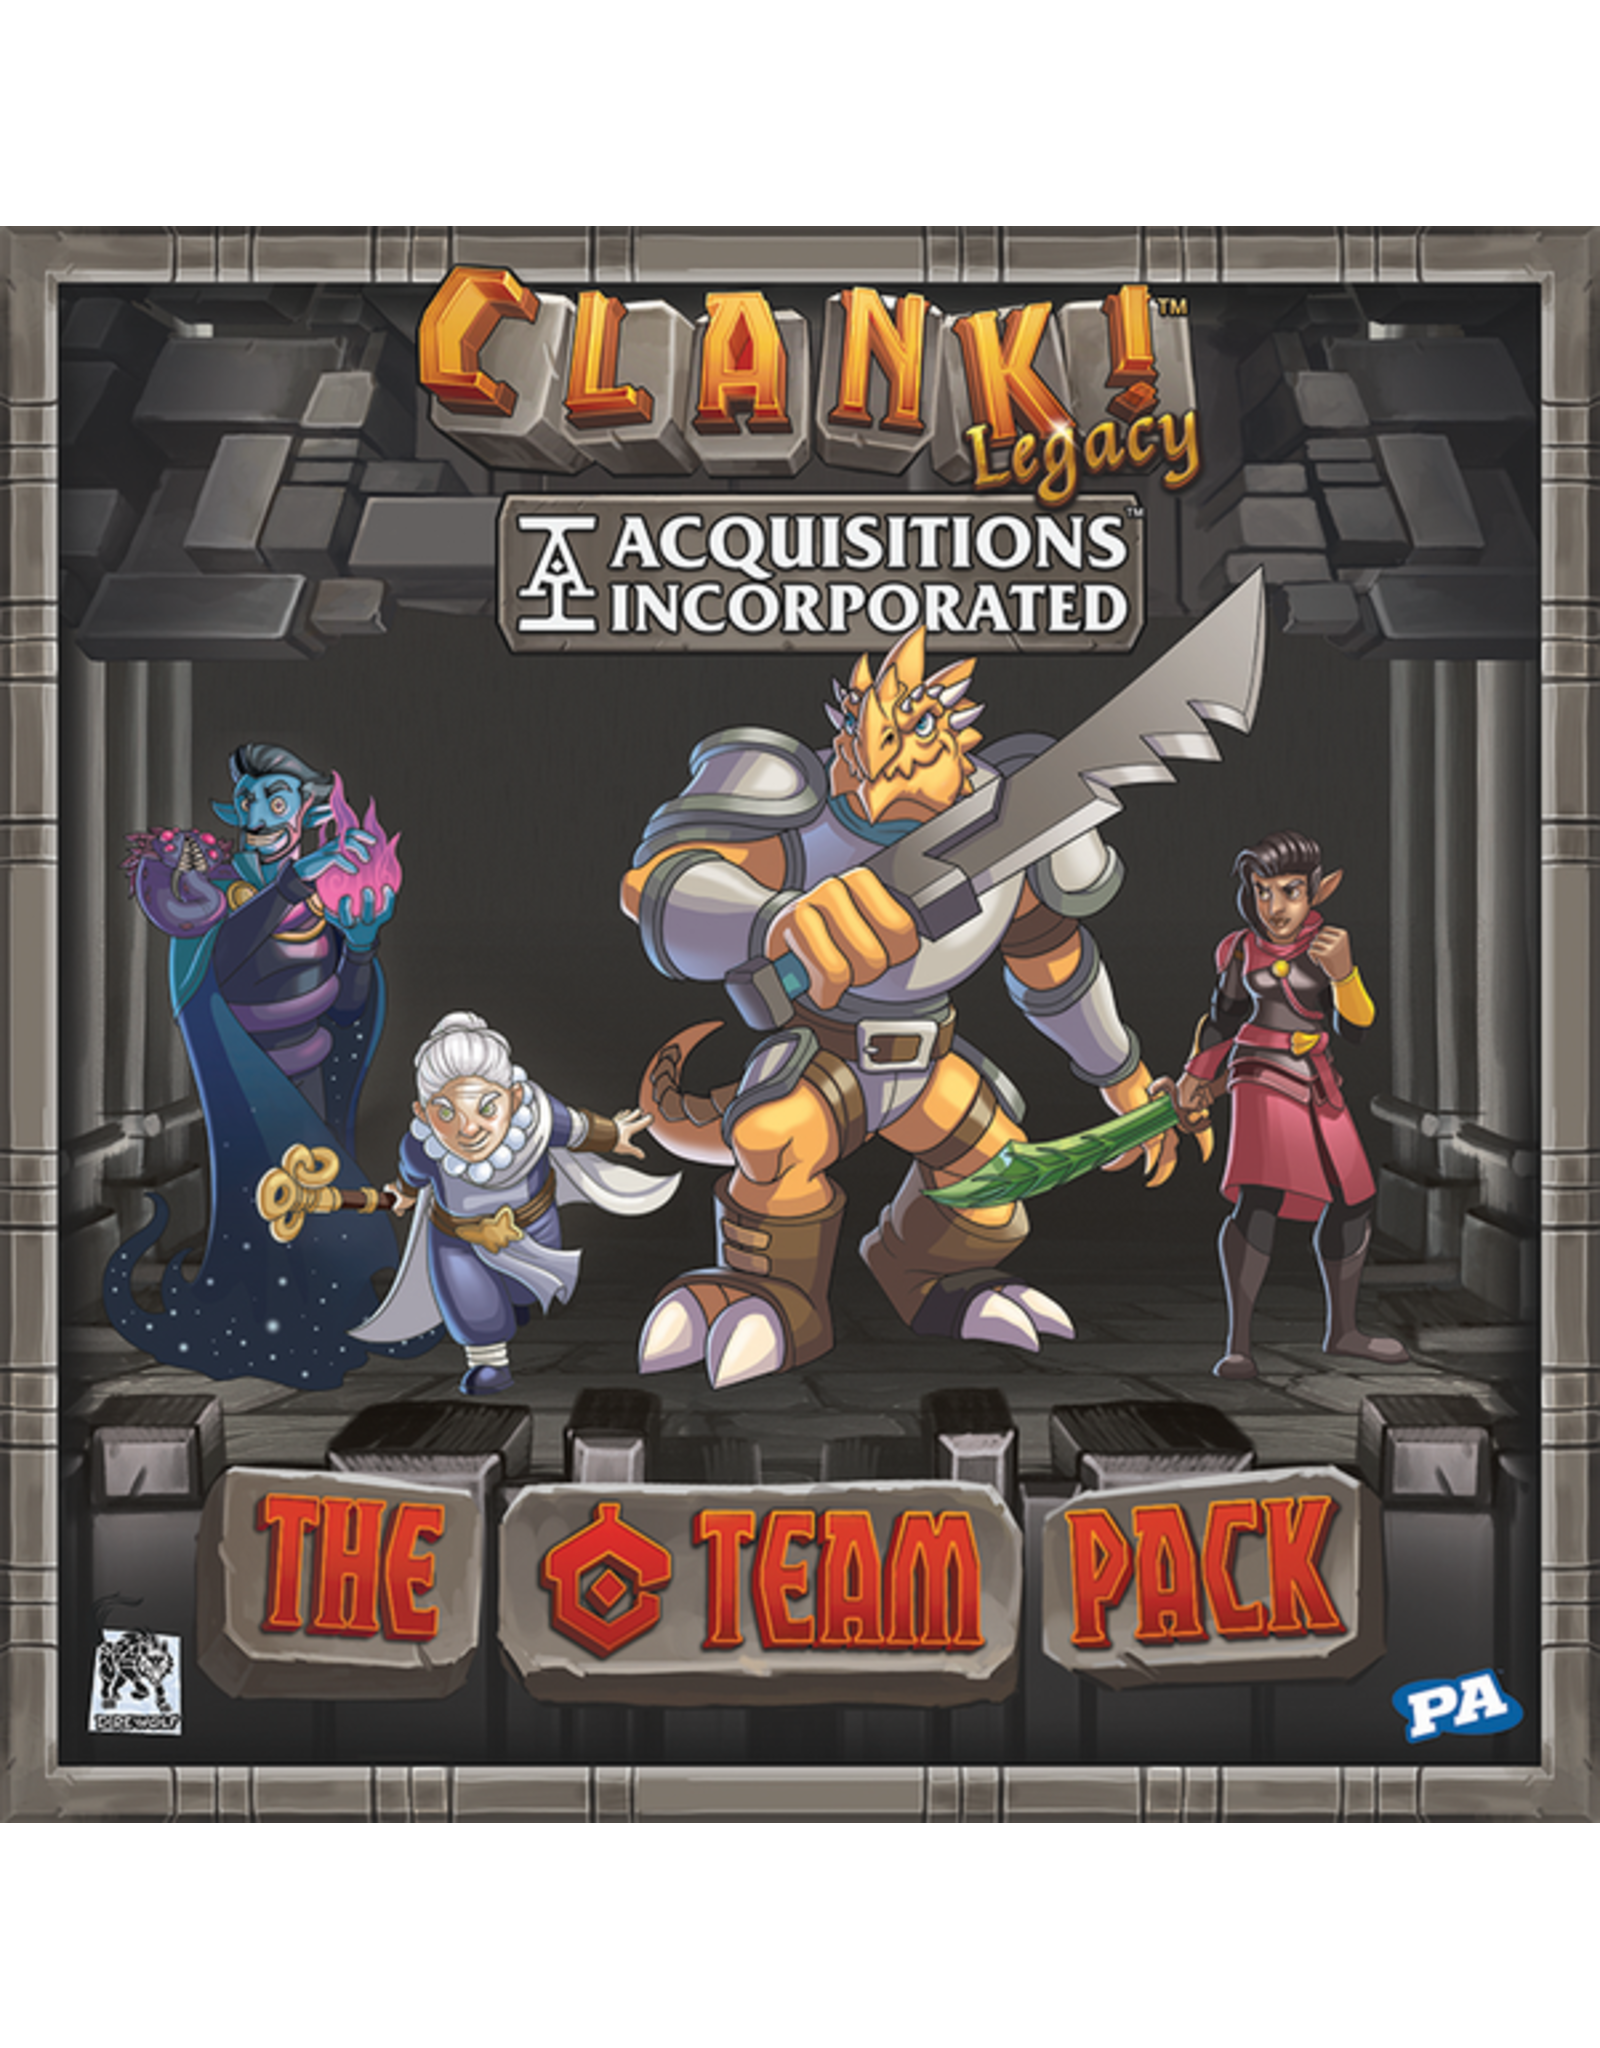 CLANK LEGACY ACQUISITIONS  INCORPORATED THE C TEAM PACK